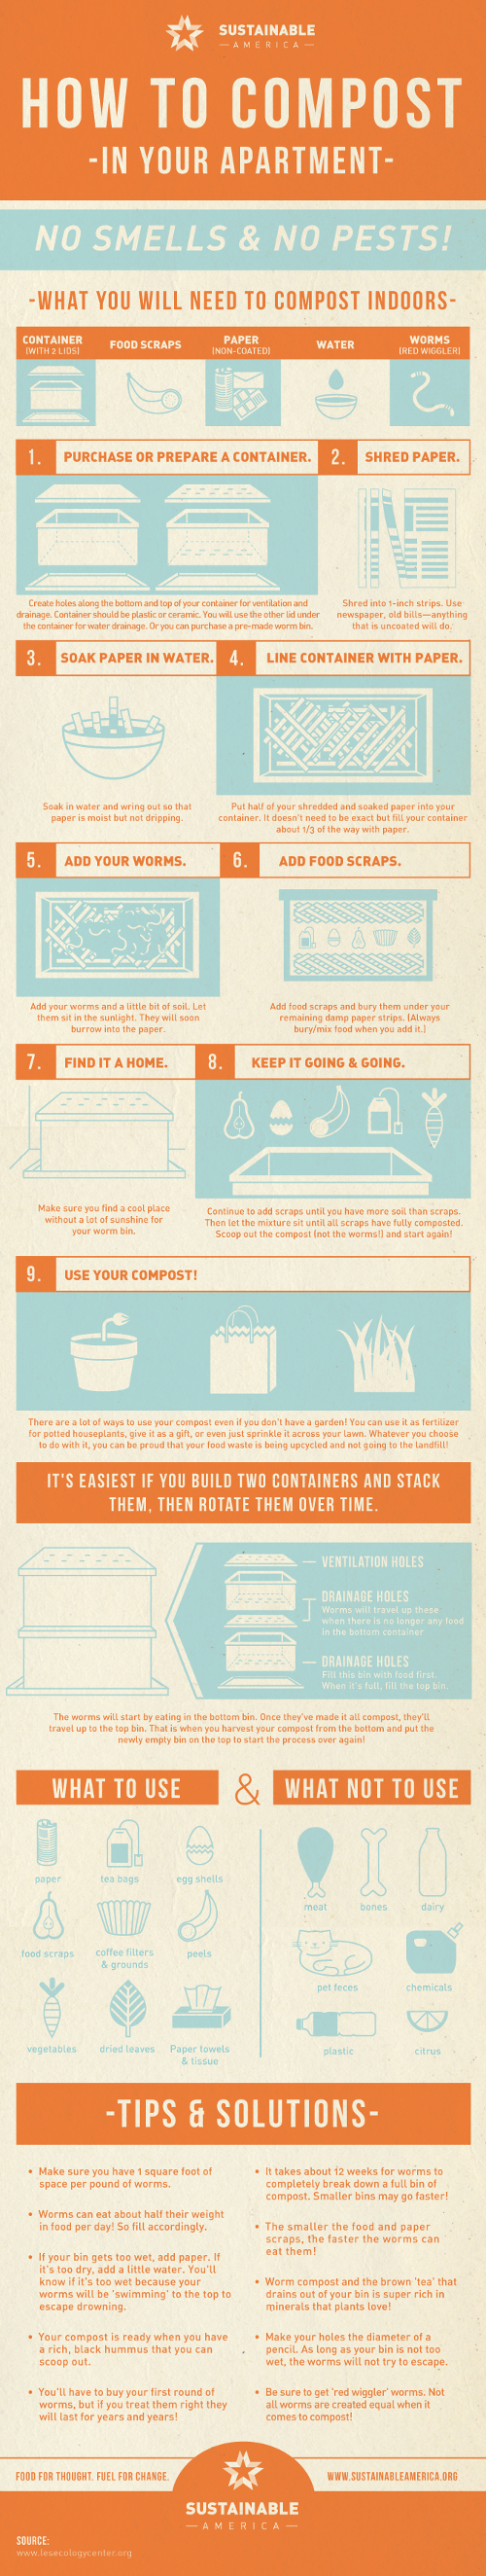 apartment-composting-infographic